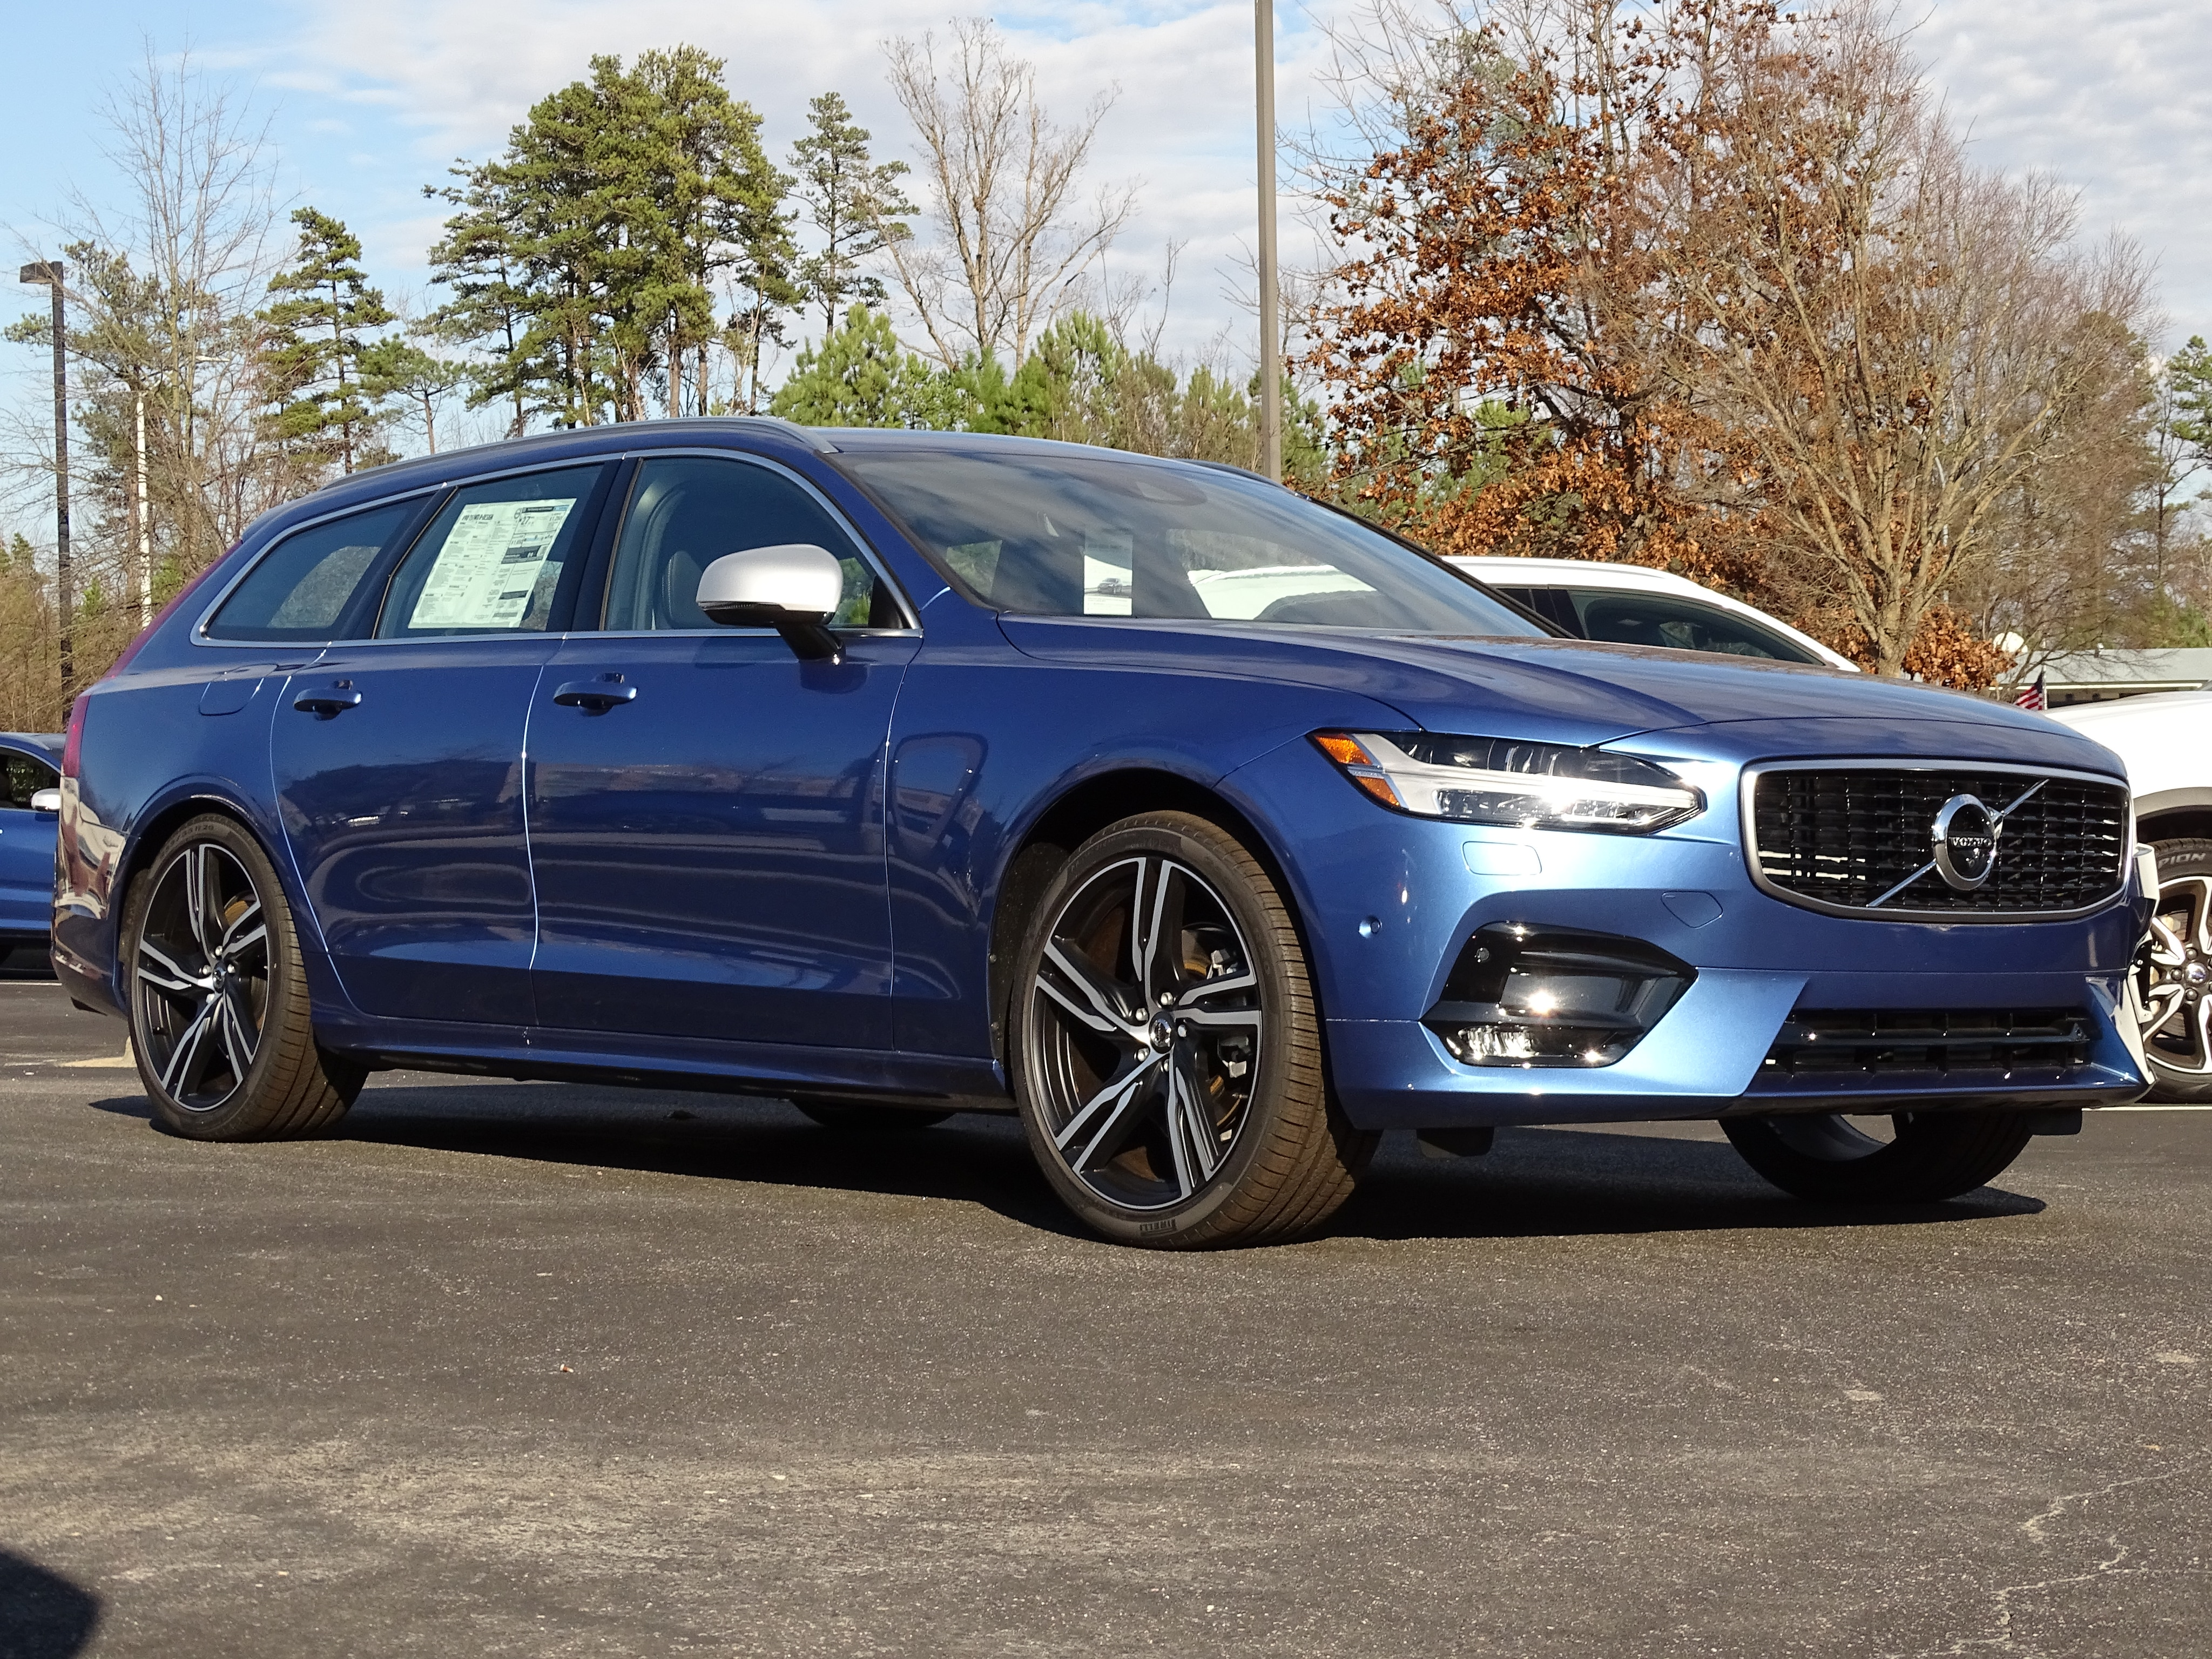 New 2019 Volvo V90 For Sale Cary Nc Vin Yv1102gm6k1084499